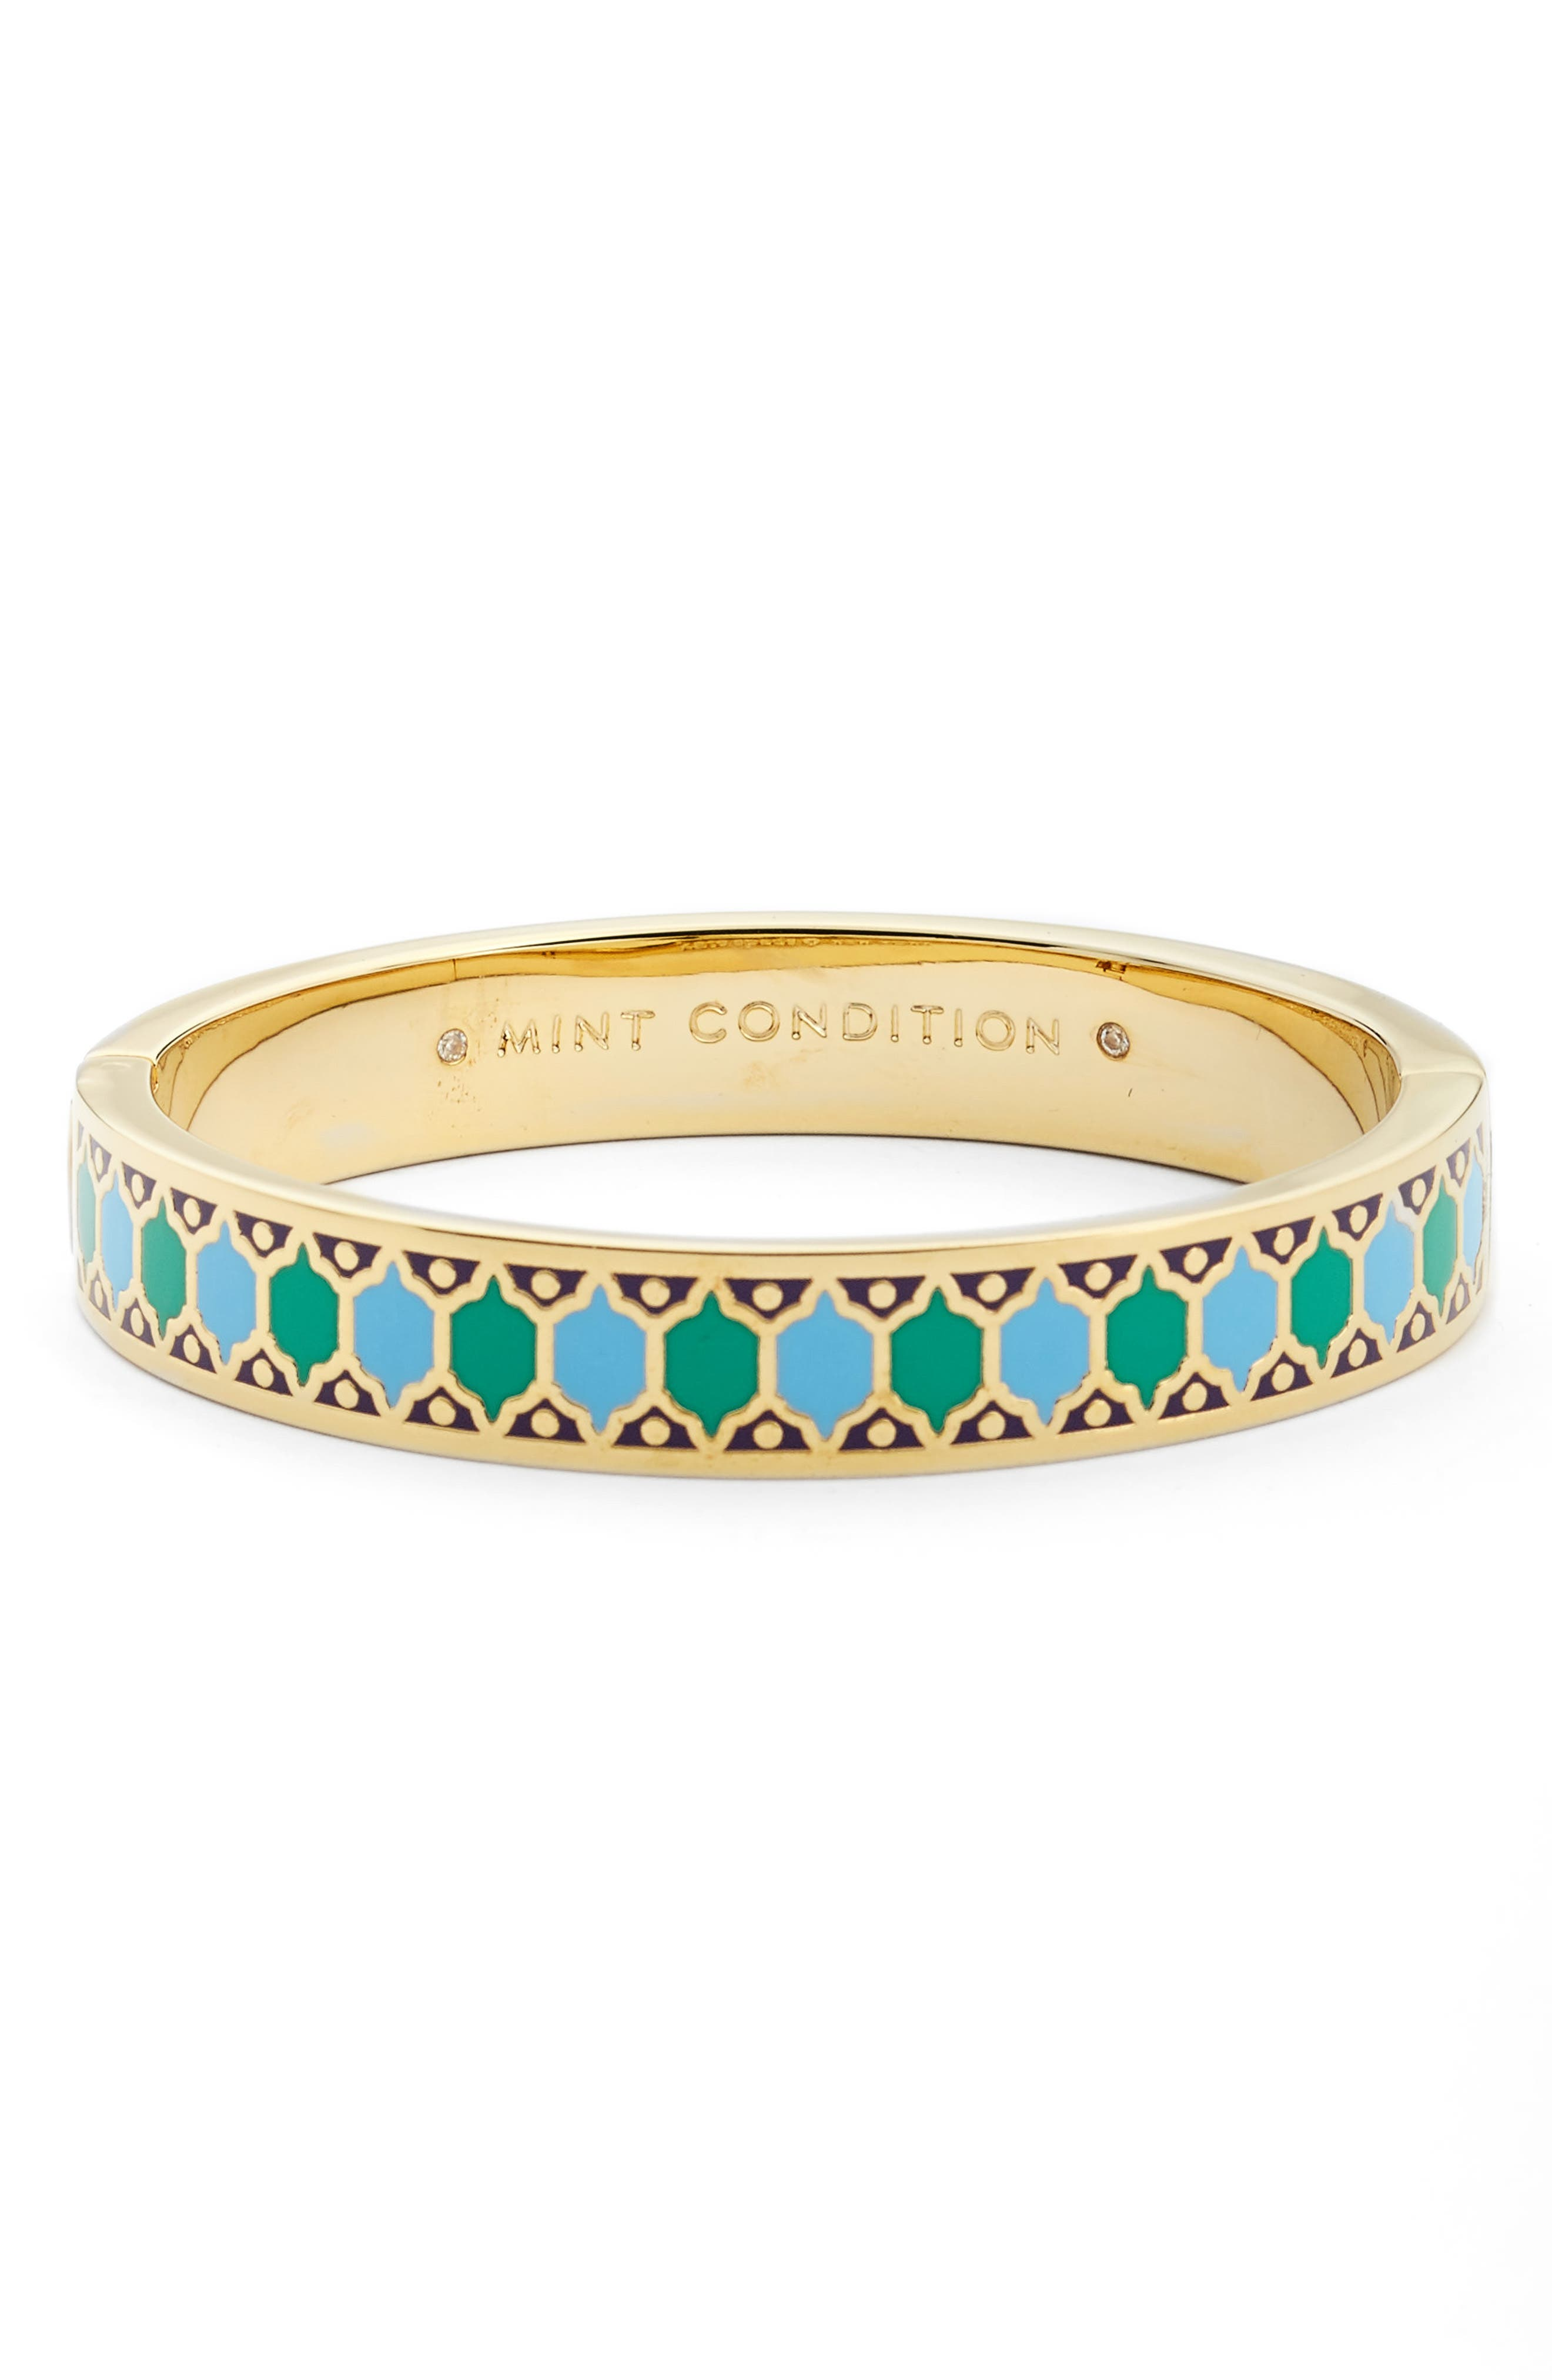 idiom mint condition bangle,                             Main thumbnail 1, color,                             400